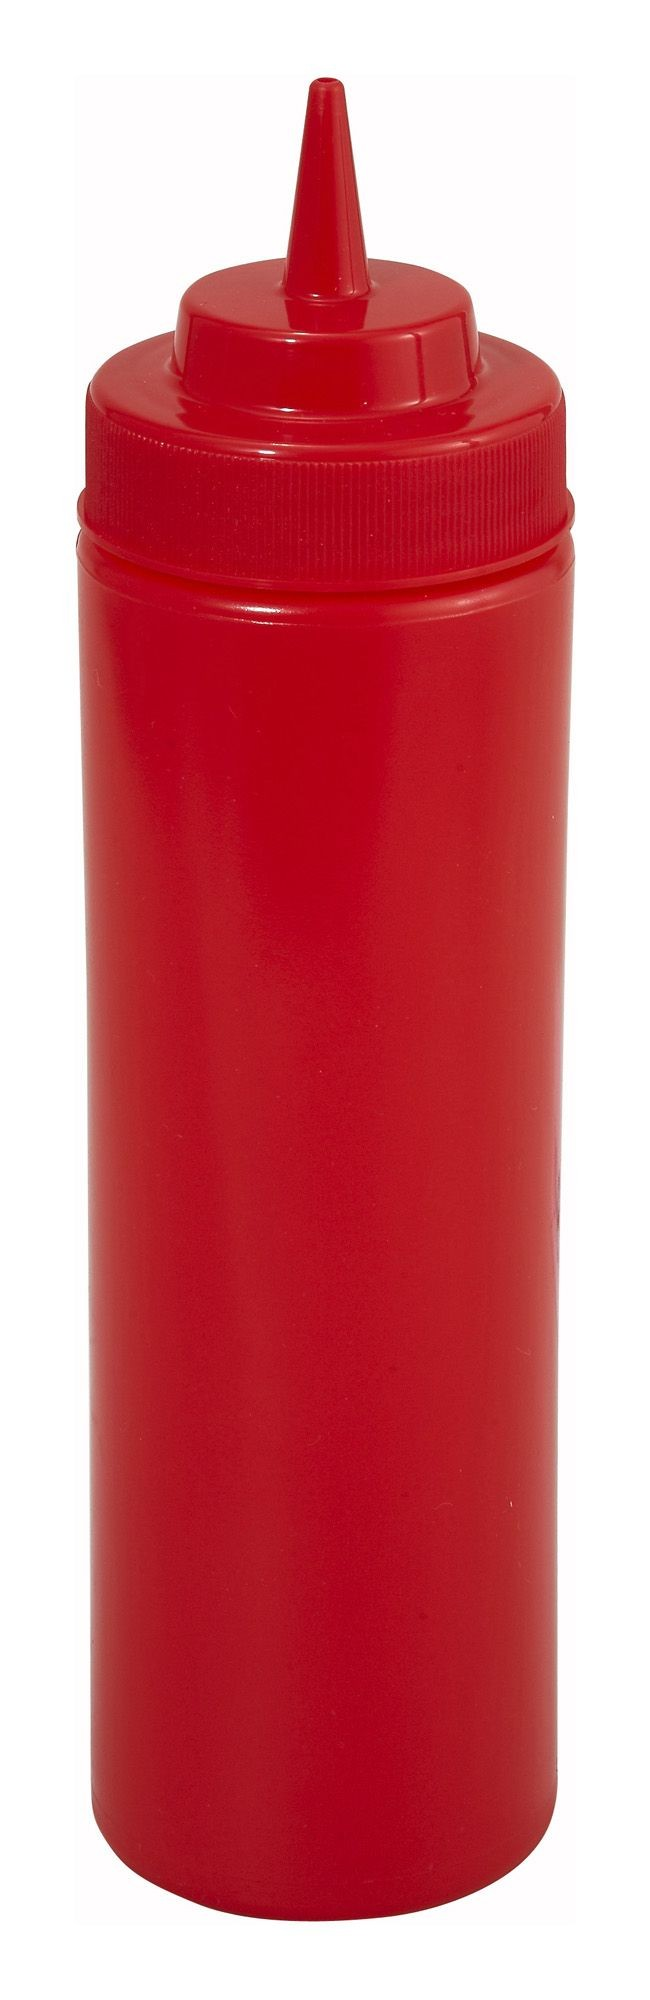 Winco PSW-16R Red Plastic 16 oz. Wide-Mouth Squeeze Bottle